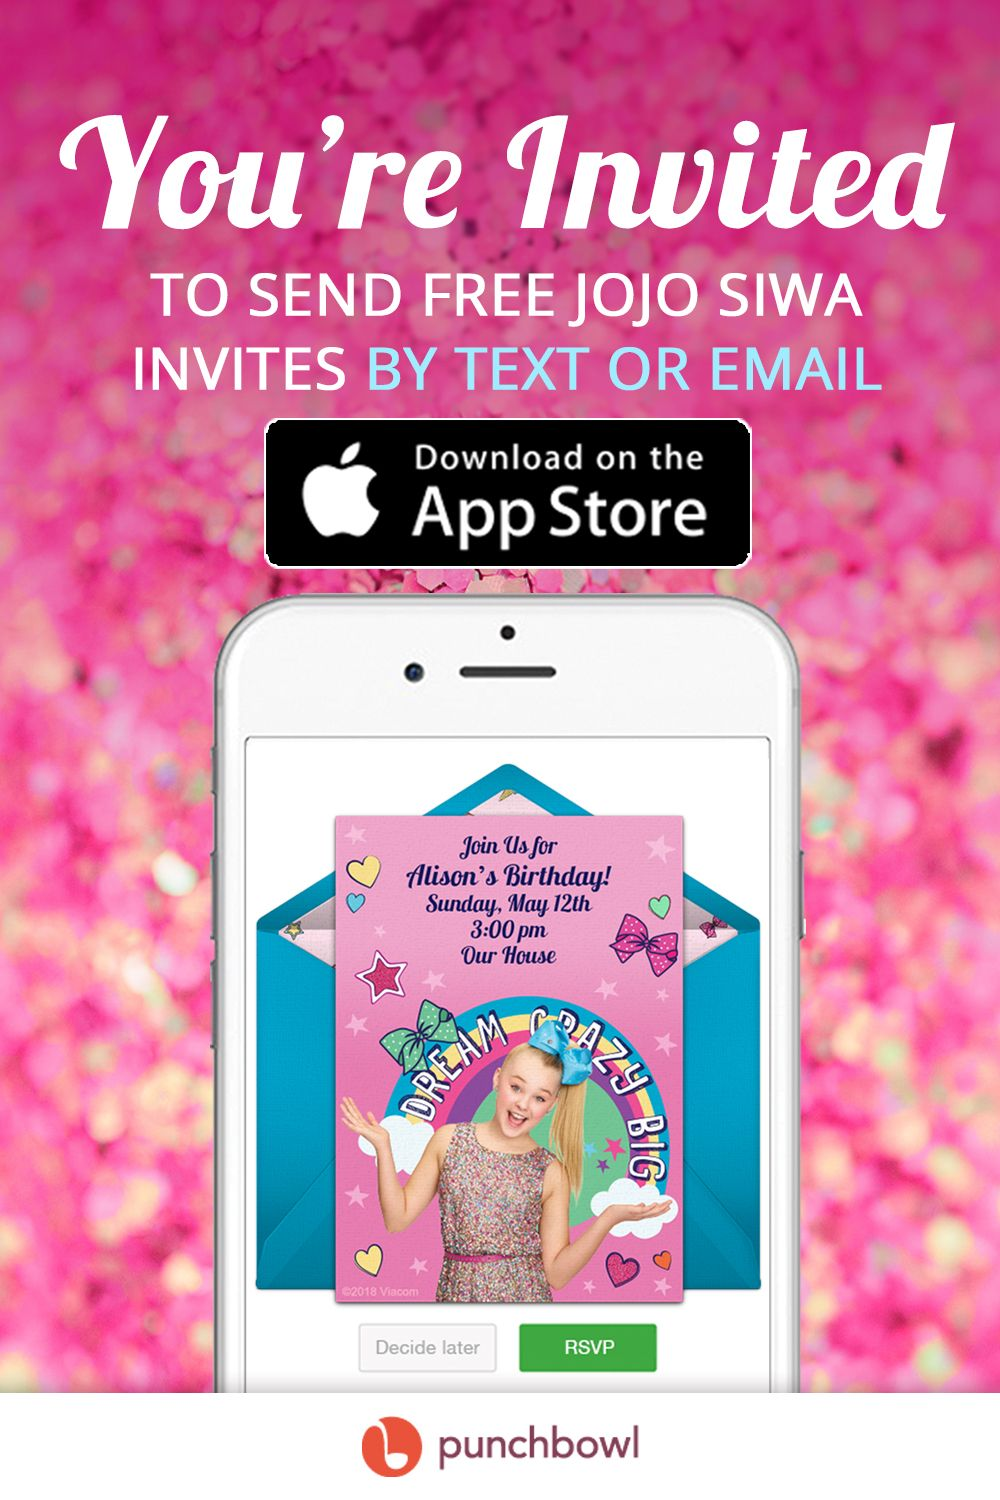 Send free Jojo Siwa invitations by text message right from